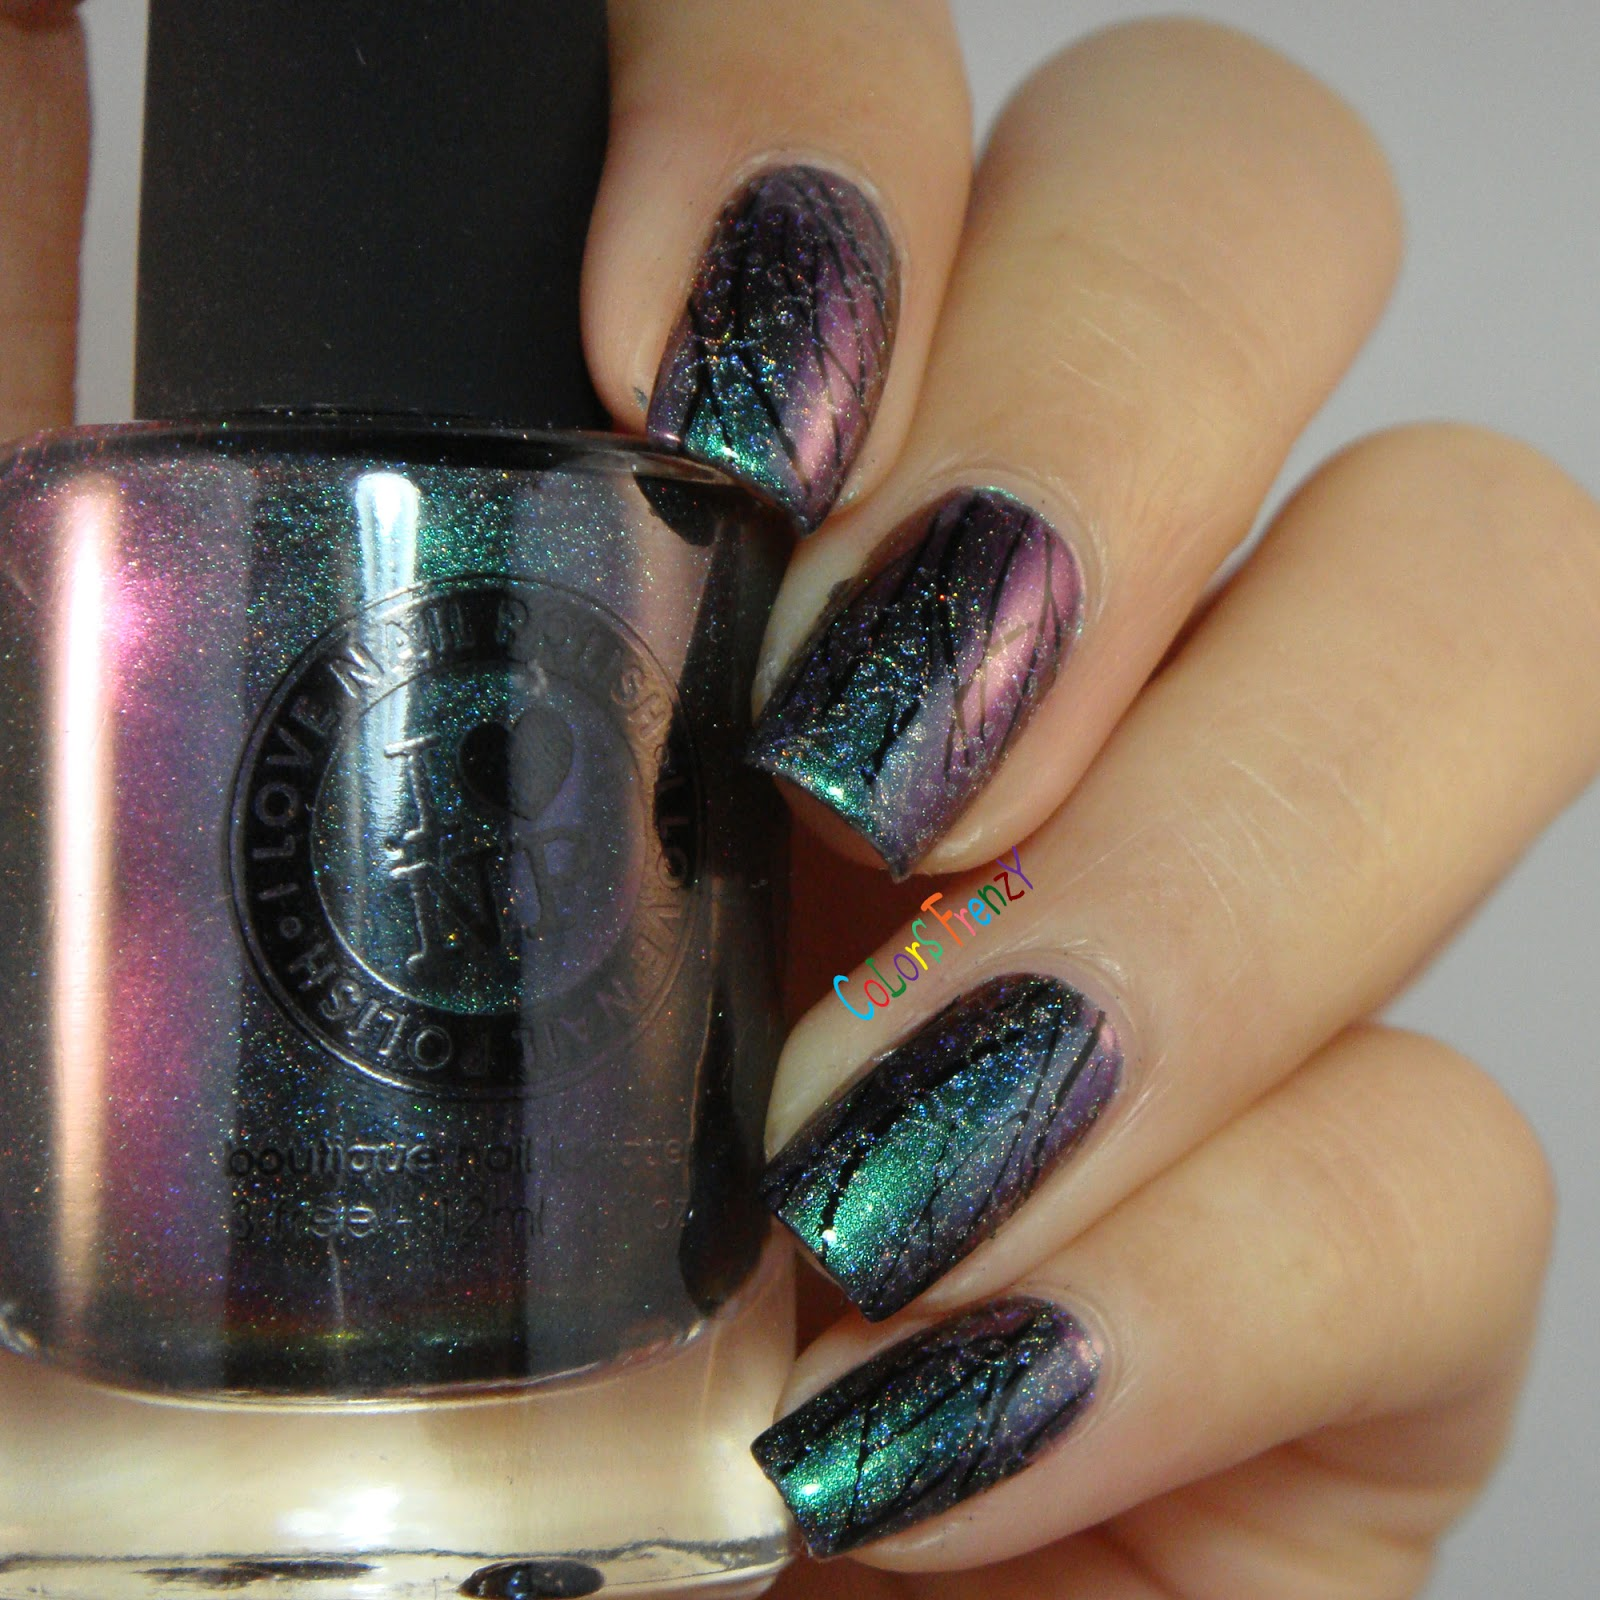 Double Stamping over ILNP Sirene